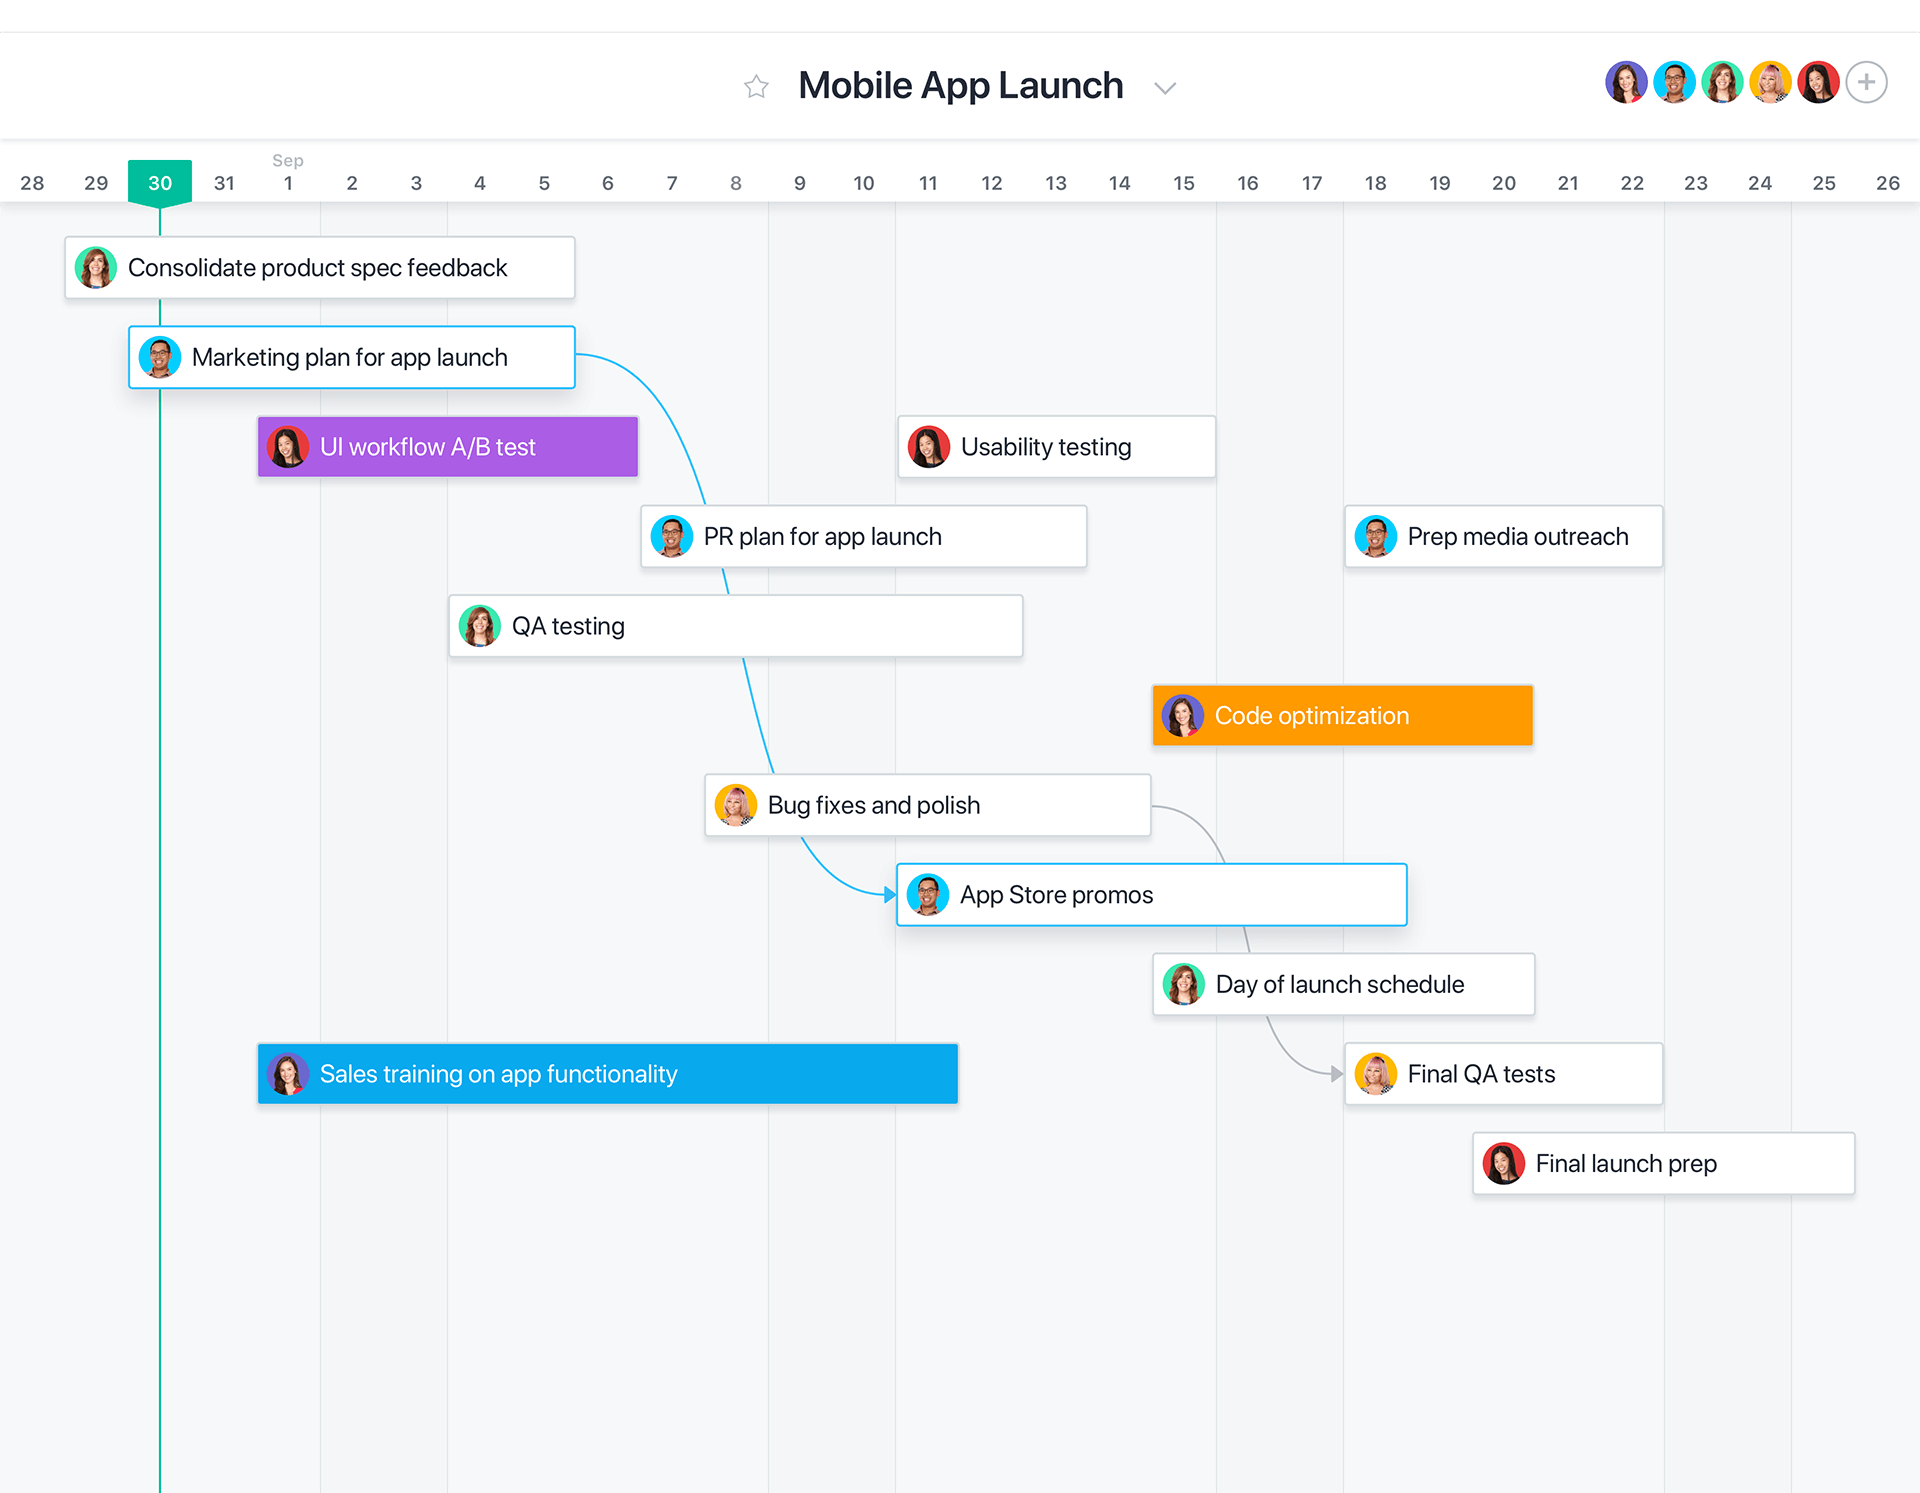 Asana's Timeline tool can show what everyone needs to work on up until launch day.